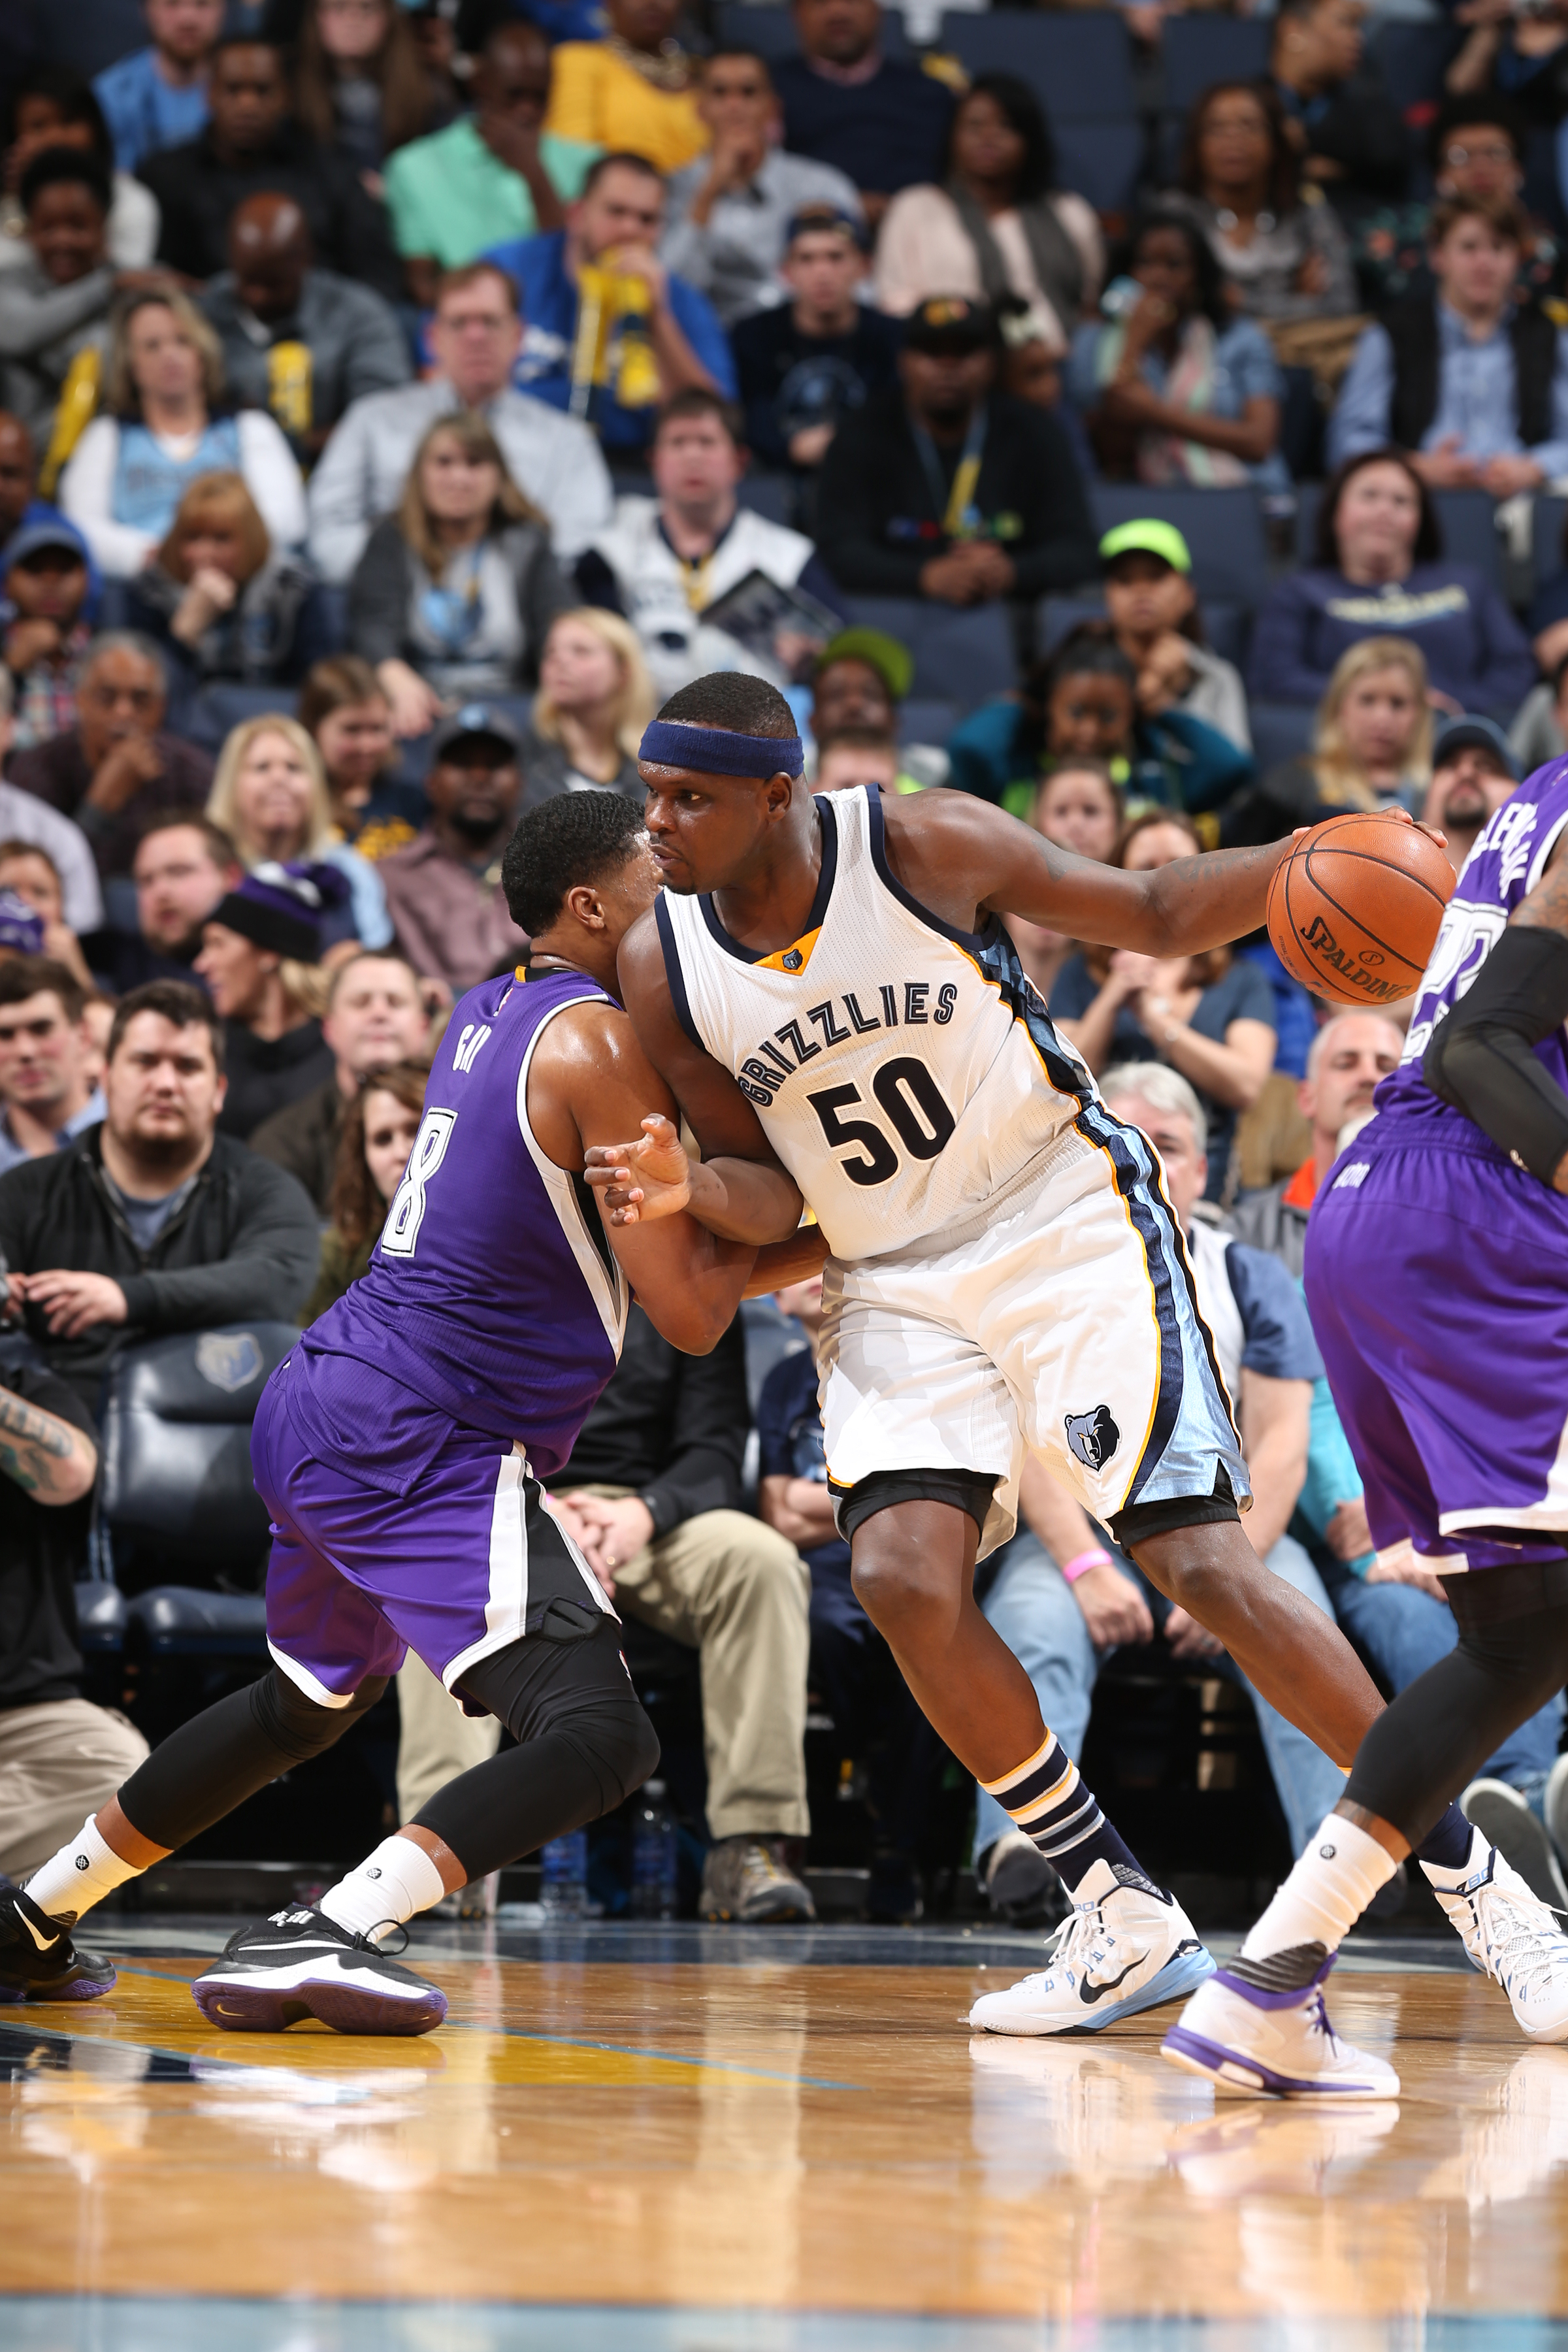 MEMPHIS, TN - JANUARY 30:  Zach Randolph #50 of the Memphis Grizzlies handles the ball against the Sacramento Kings on January 30, 2016 in Memphis, Tennessee. (Photo by Joe Murphy/NBAE via Getty Images)